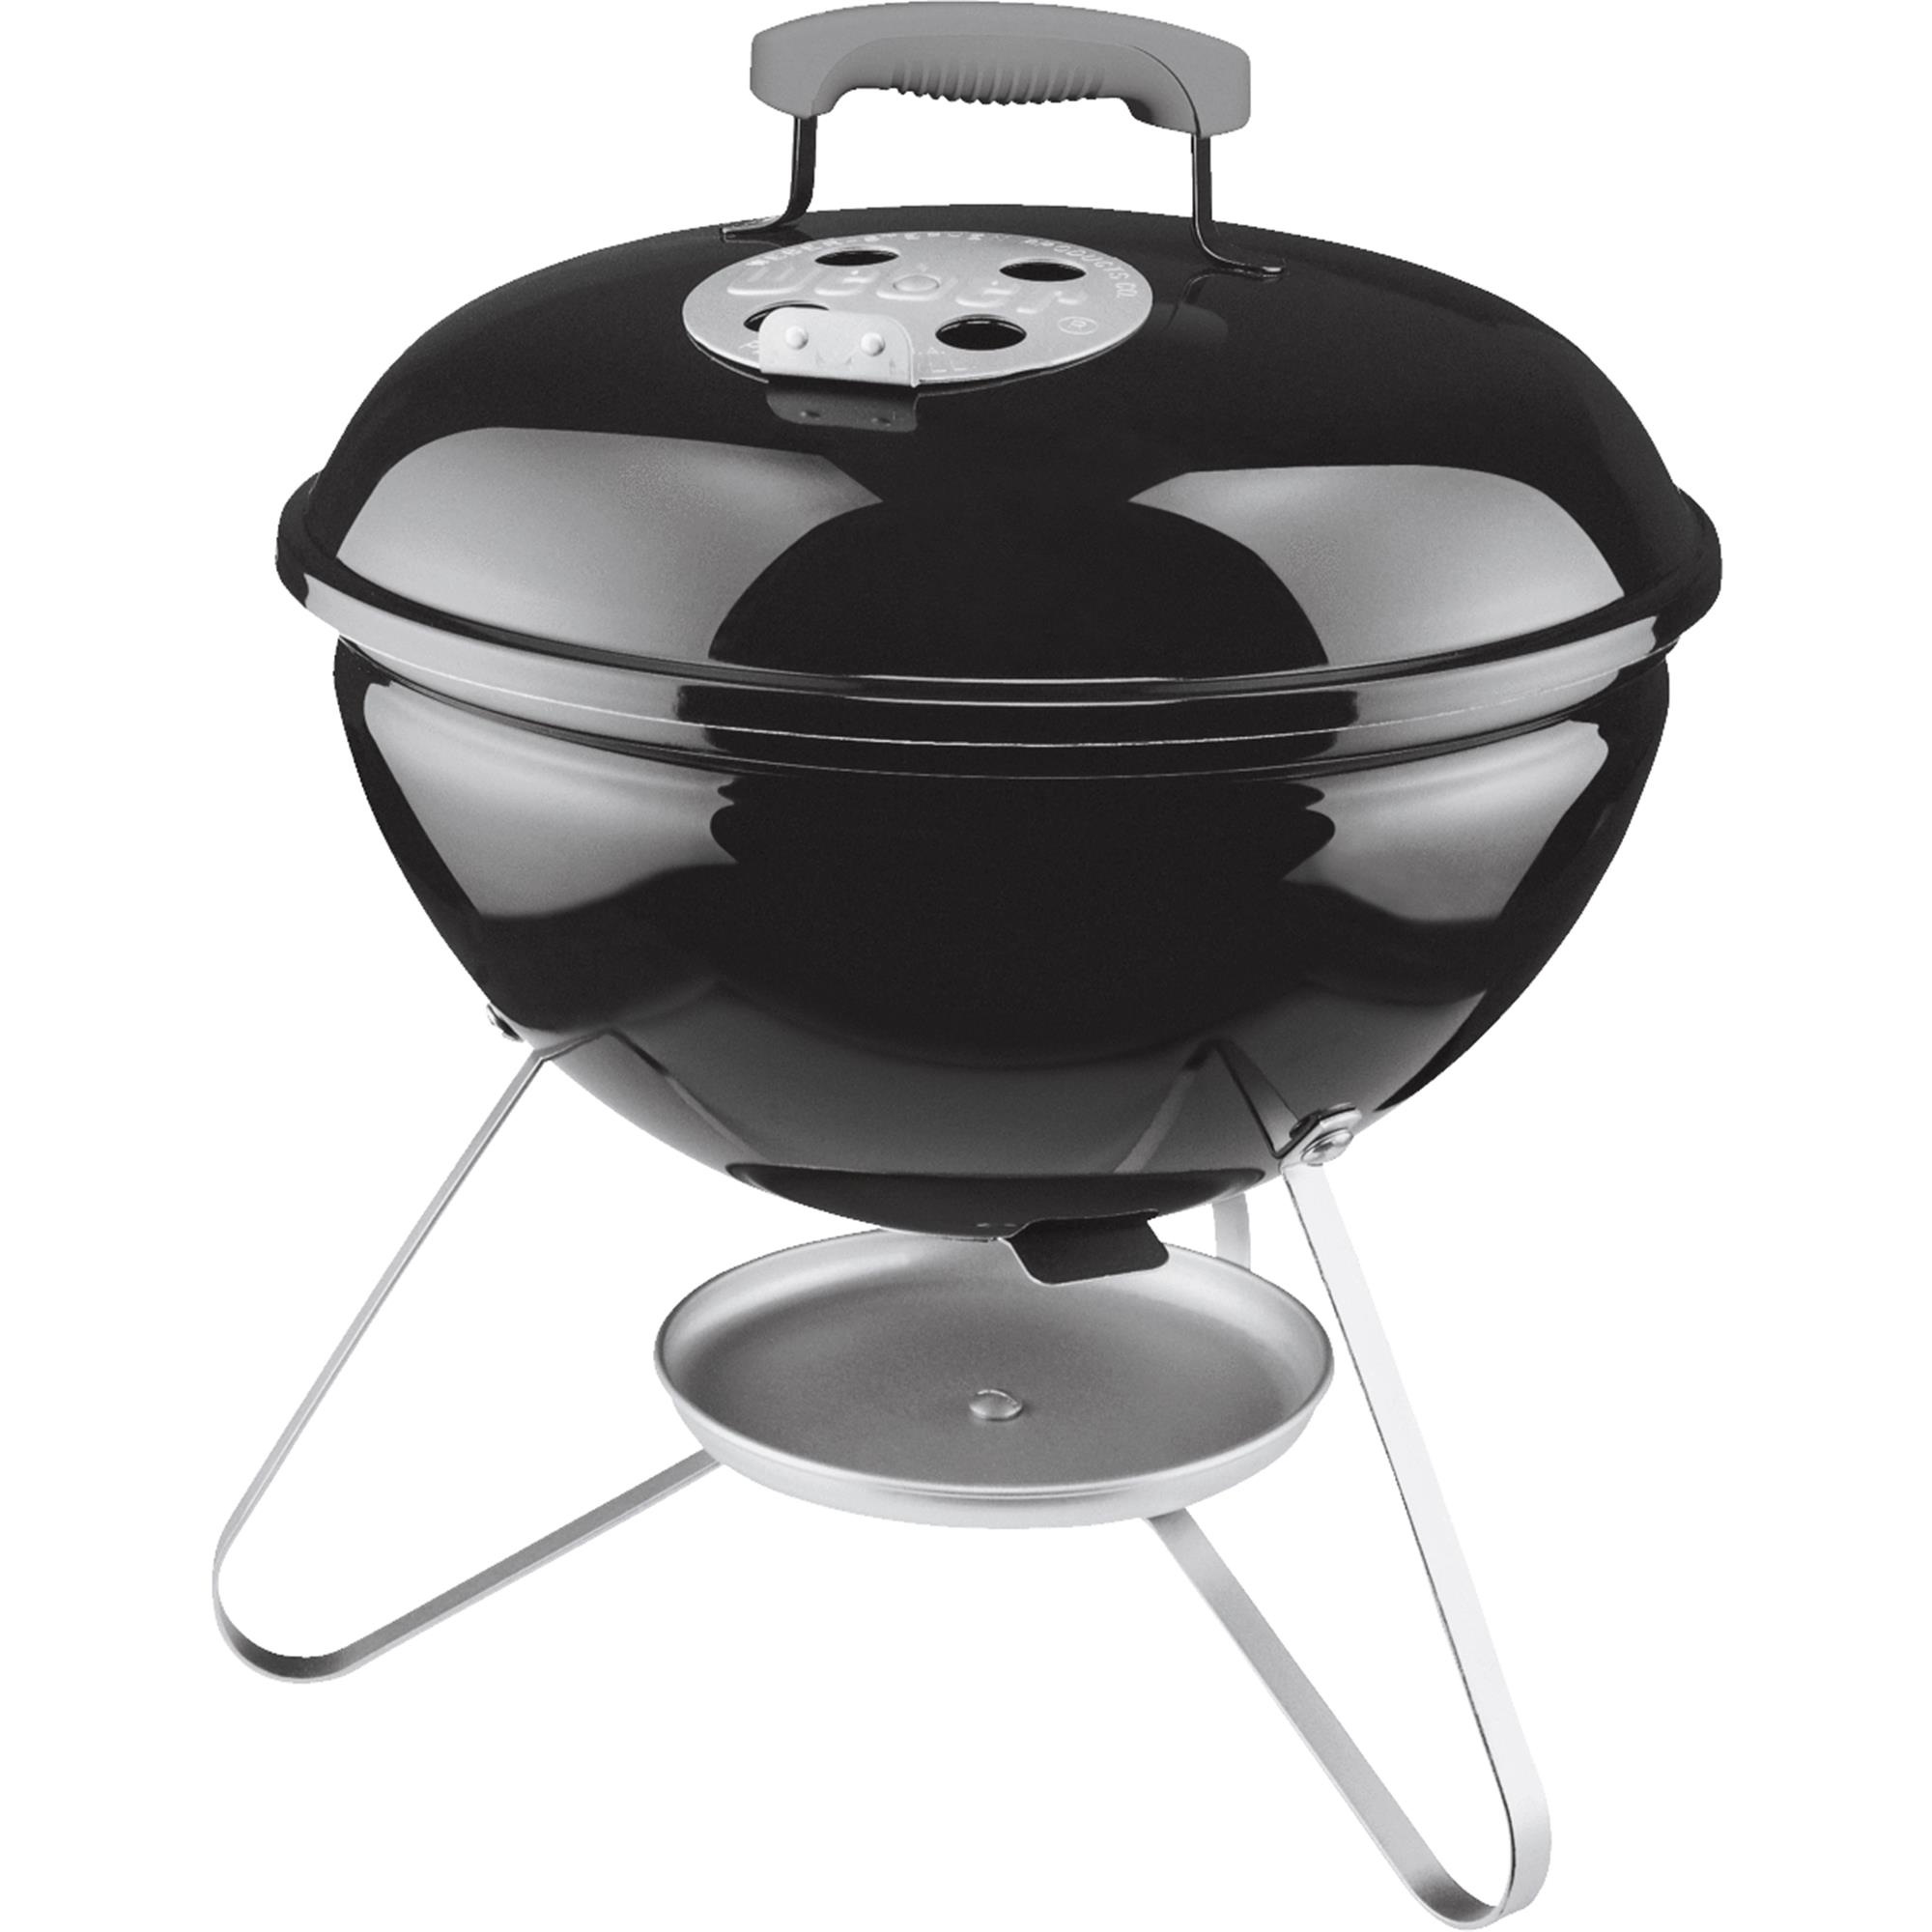 "Weber 14"" Smokey Joe Charcoal Grill, Black"